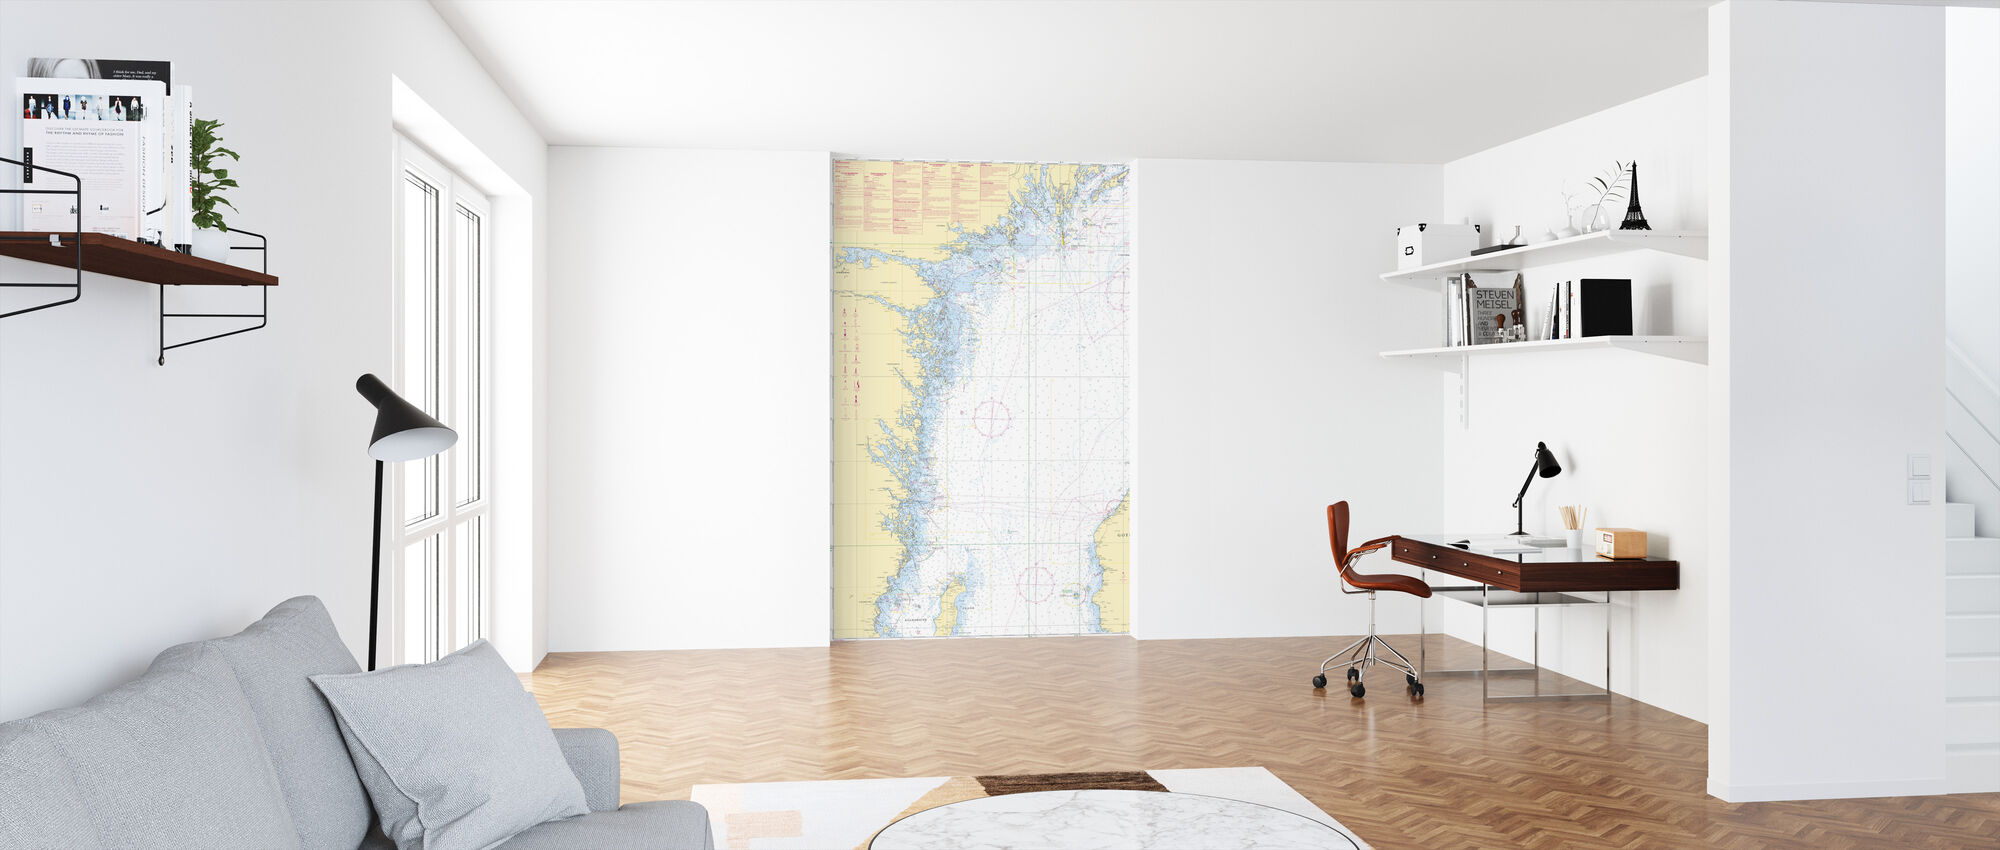 Sea Chart 72 - Oland - Landsort - Wallpaper - Office